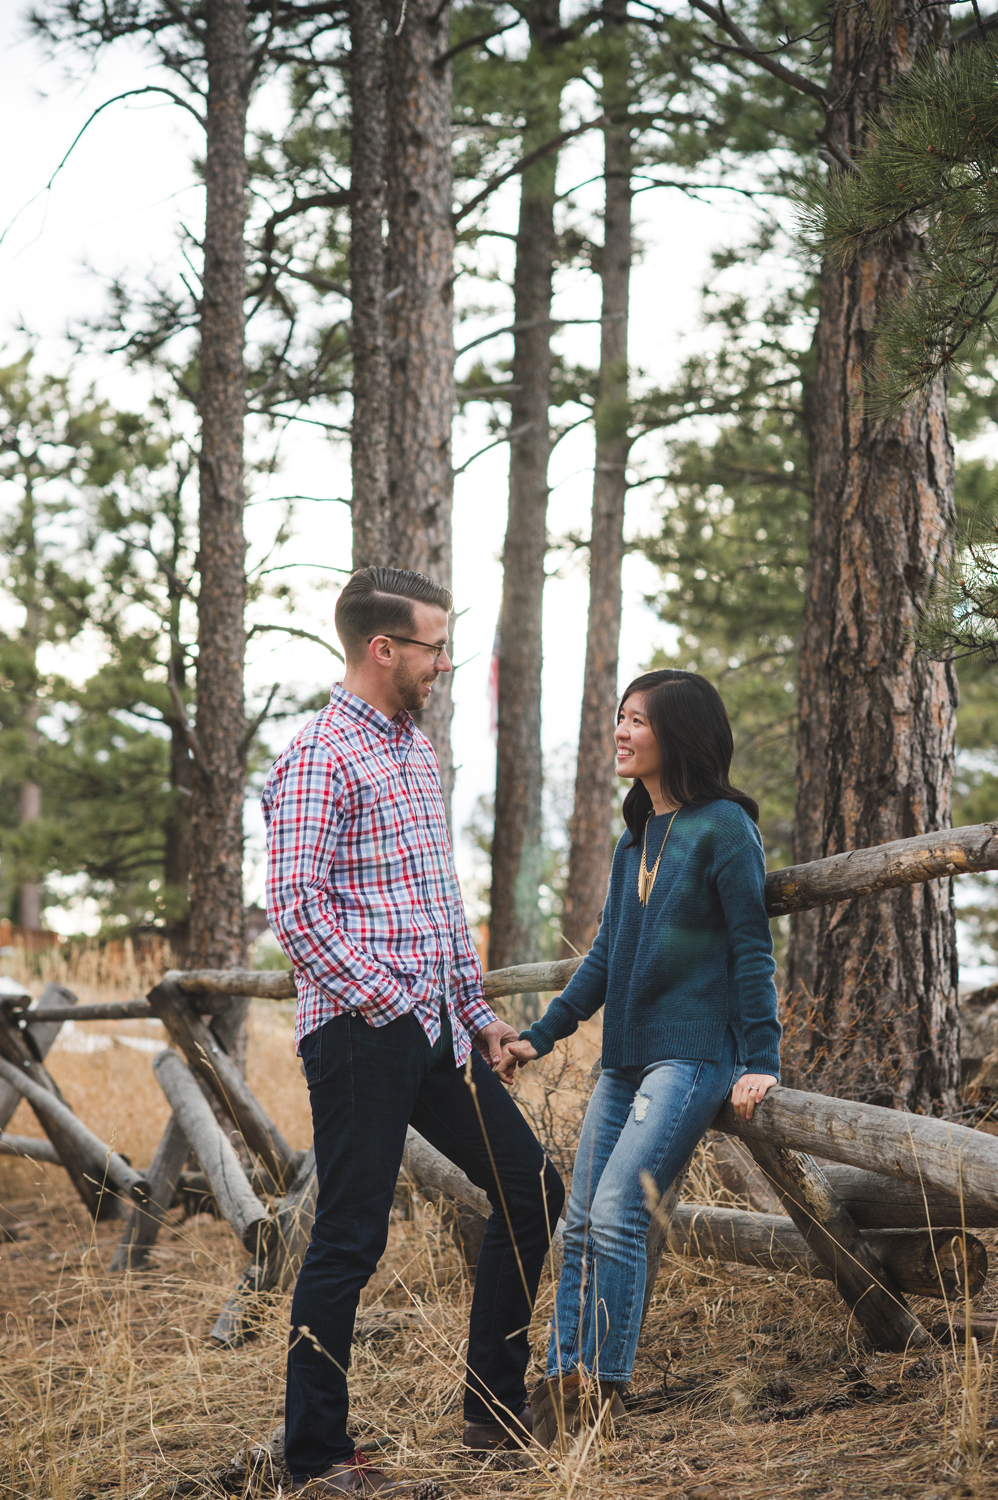 TiffanyandMark_Engaged_0609_squarespace.jpg